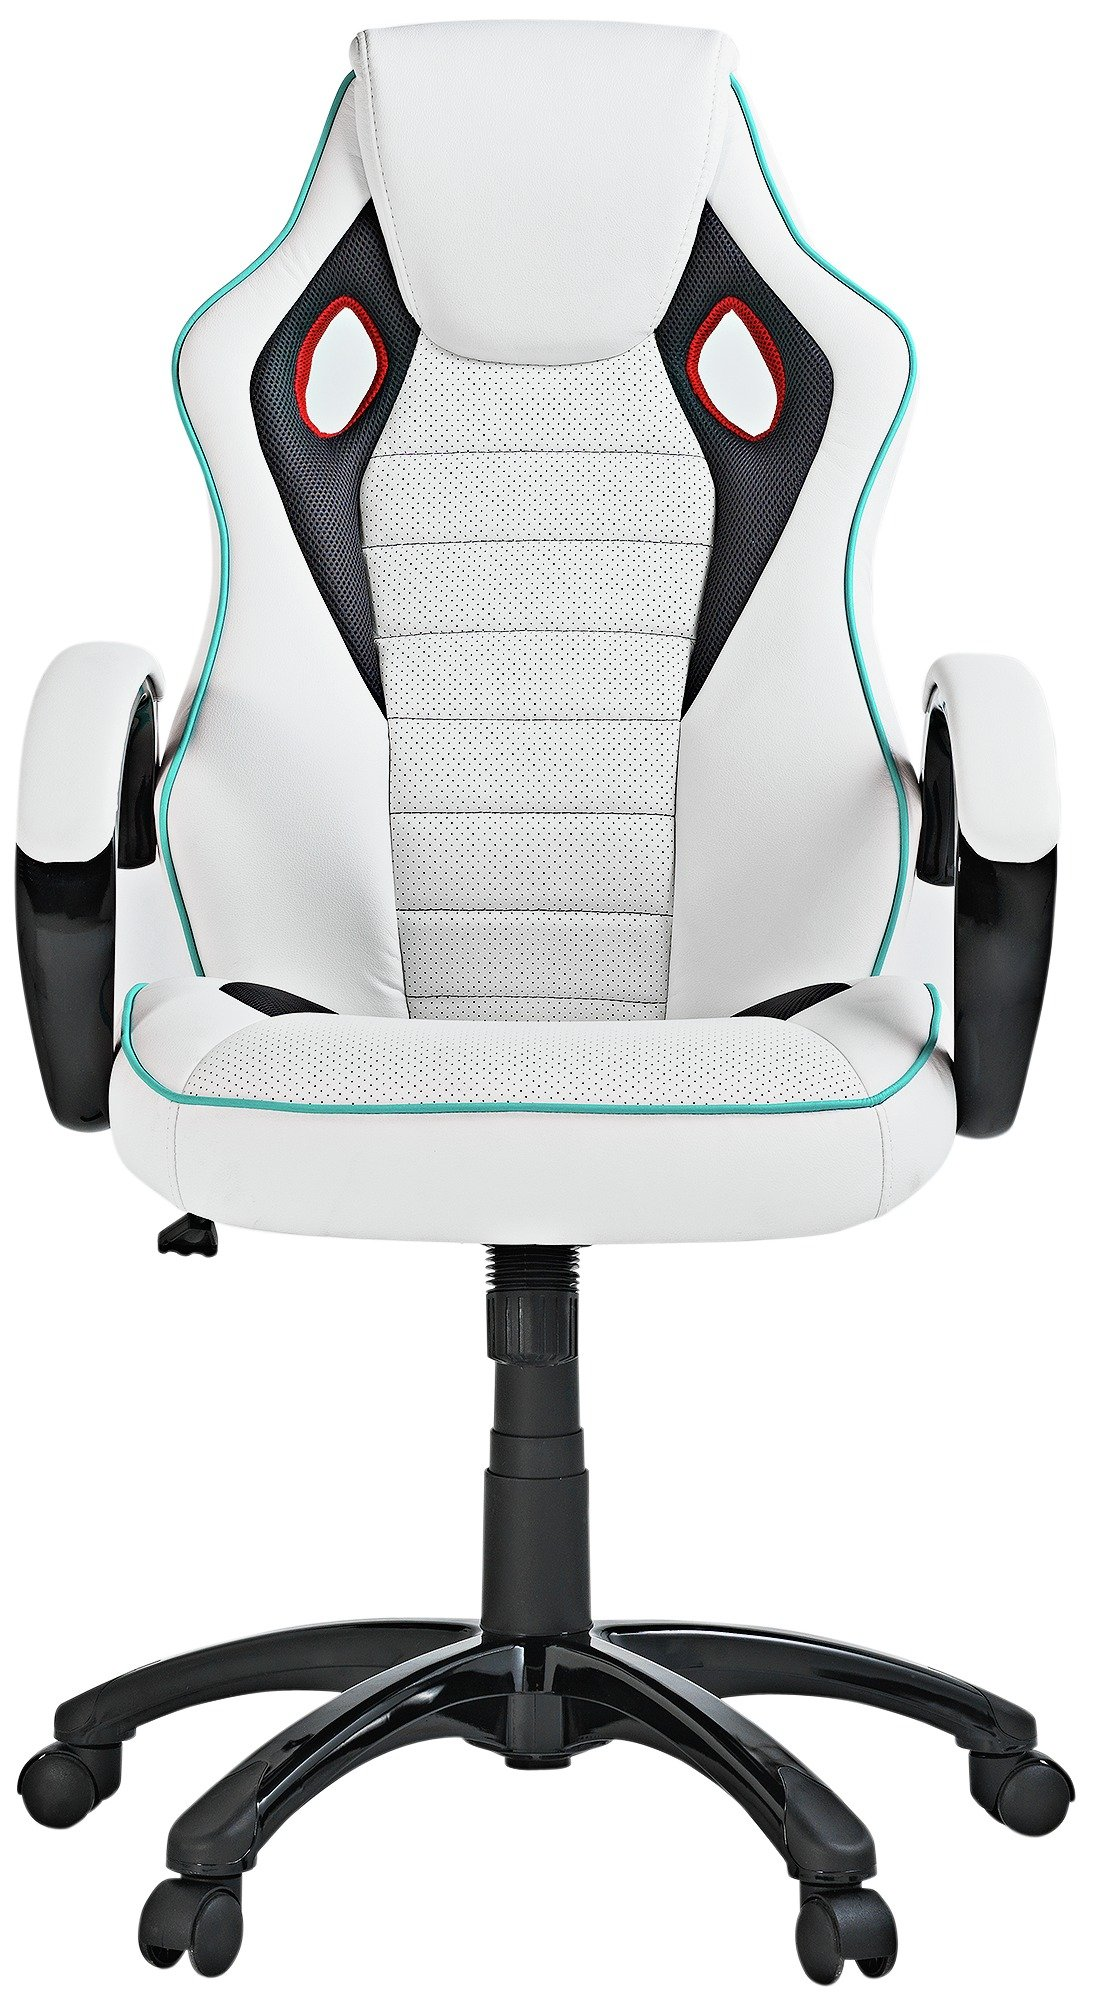 buy x-rocker height adjustable office gaming chair - white at